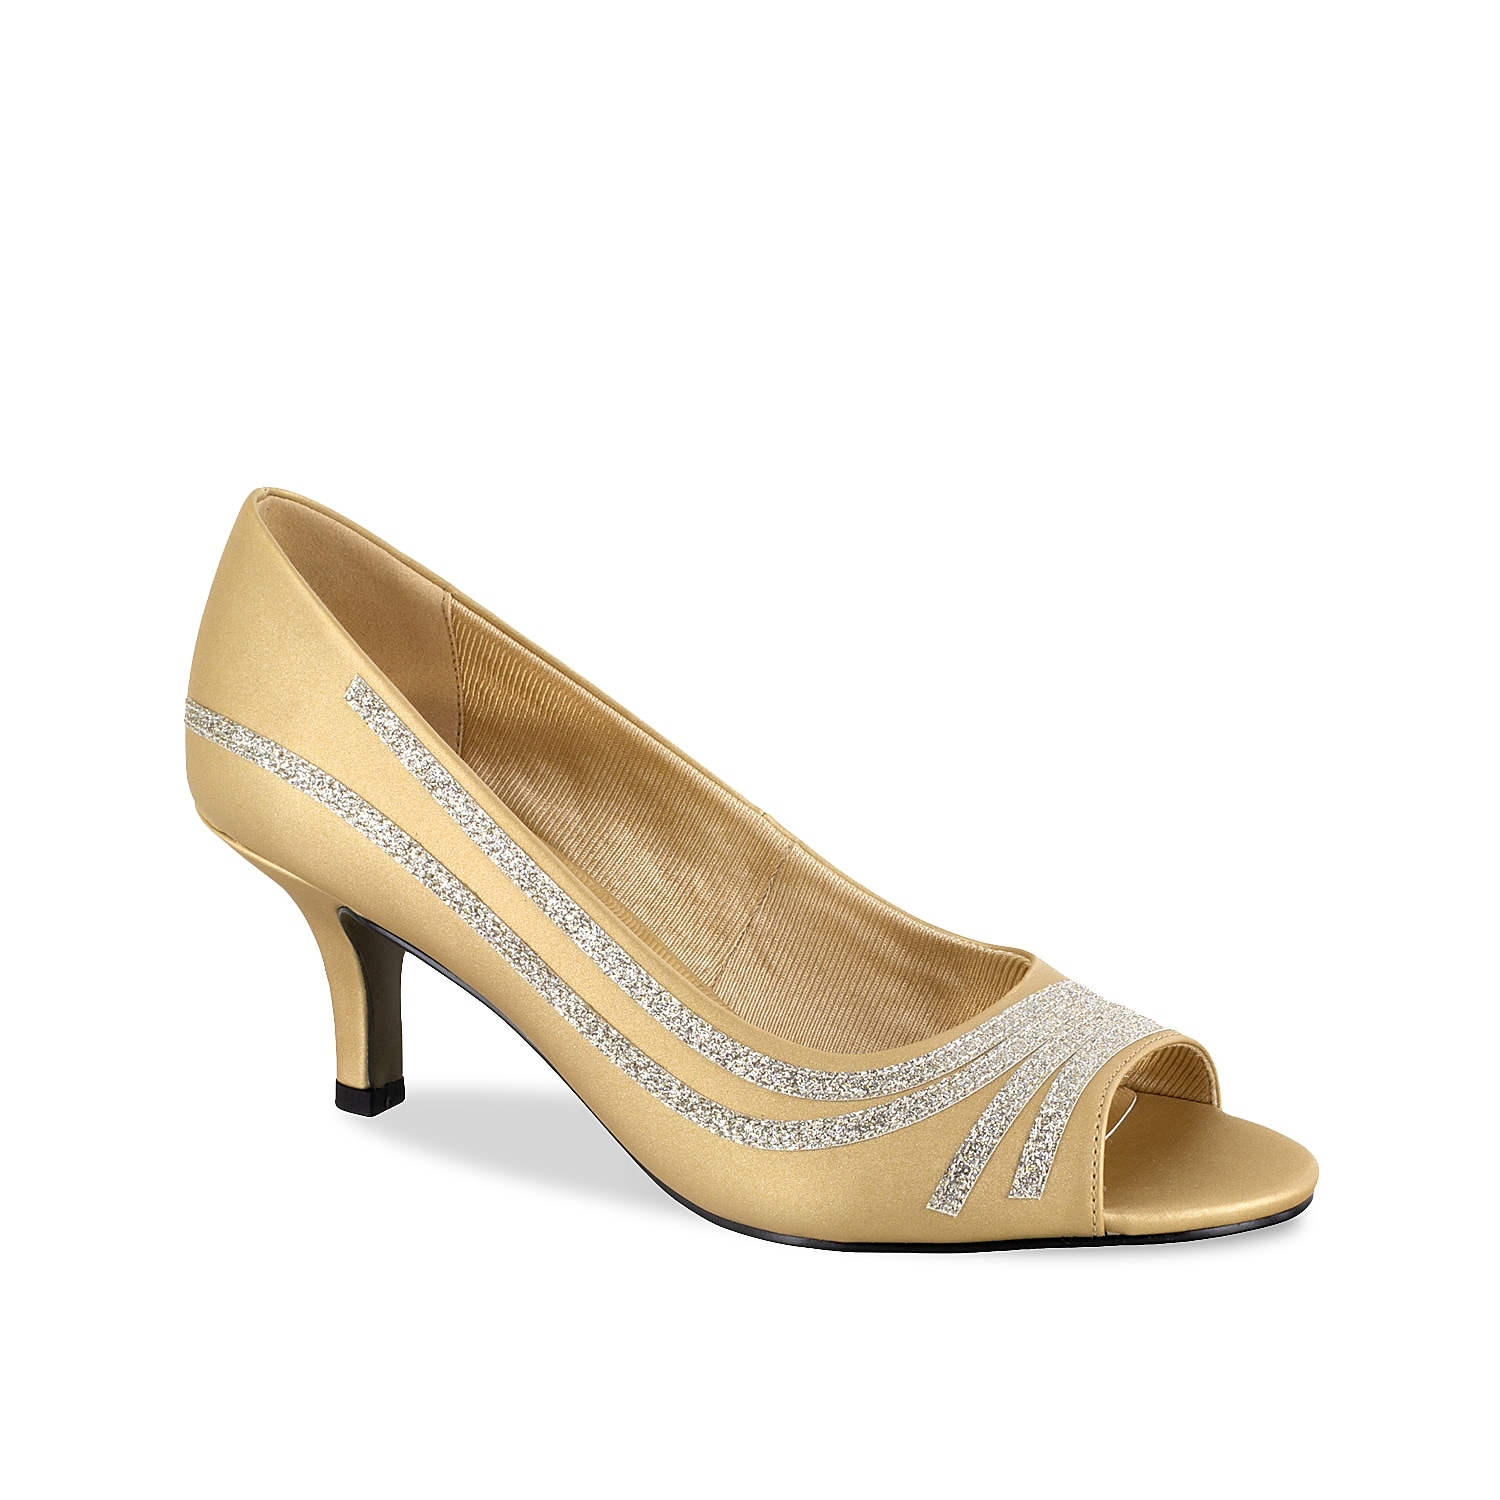 Keep moving in fabulous style with the Lady pump from Easy Street. This classic silhouette is fashioned with glitter accents and a cushioned footbed for all the comfort!